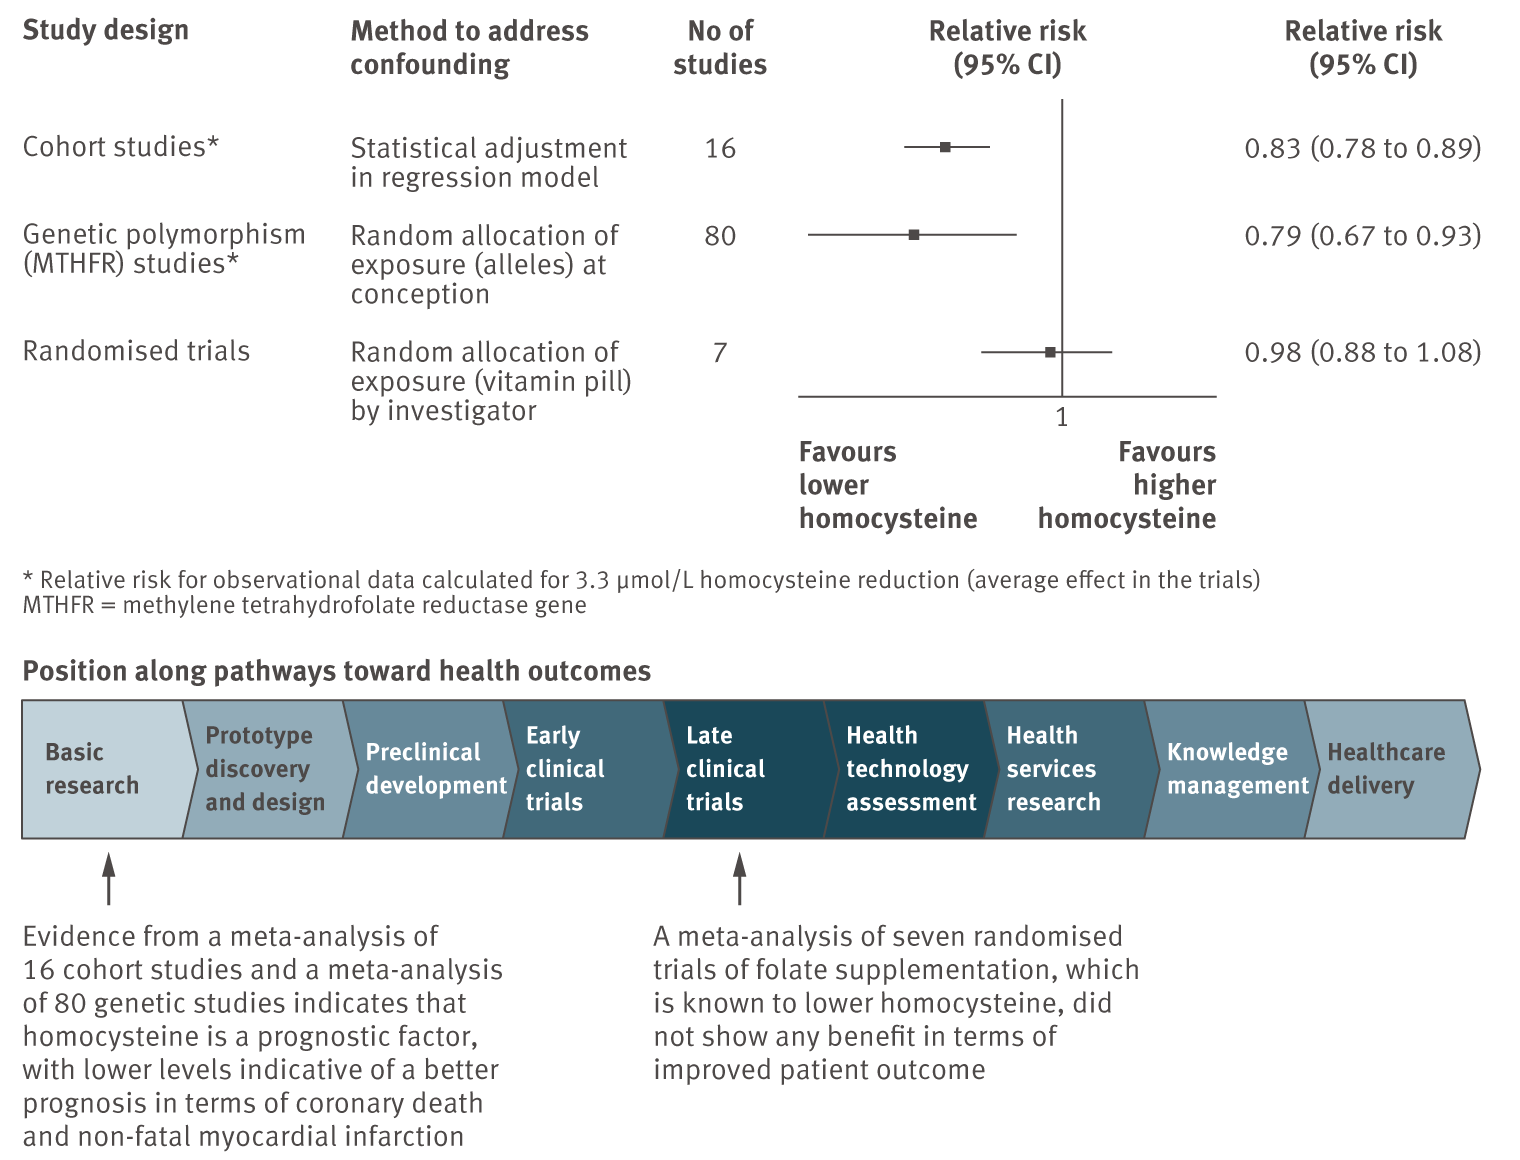 Evaluation of whether homocysteine is a prognostic factor, and whether modifying it improves clinical outcome in patients with coronary disease (drawn from data in <em class=&quot;ref&quot;>[35]</em>).